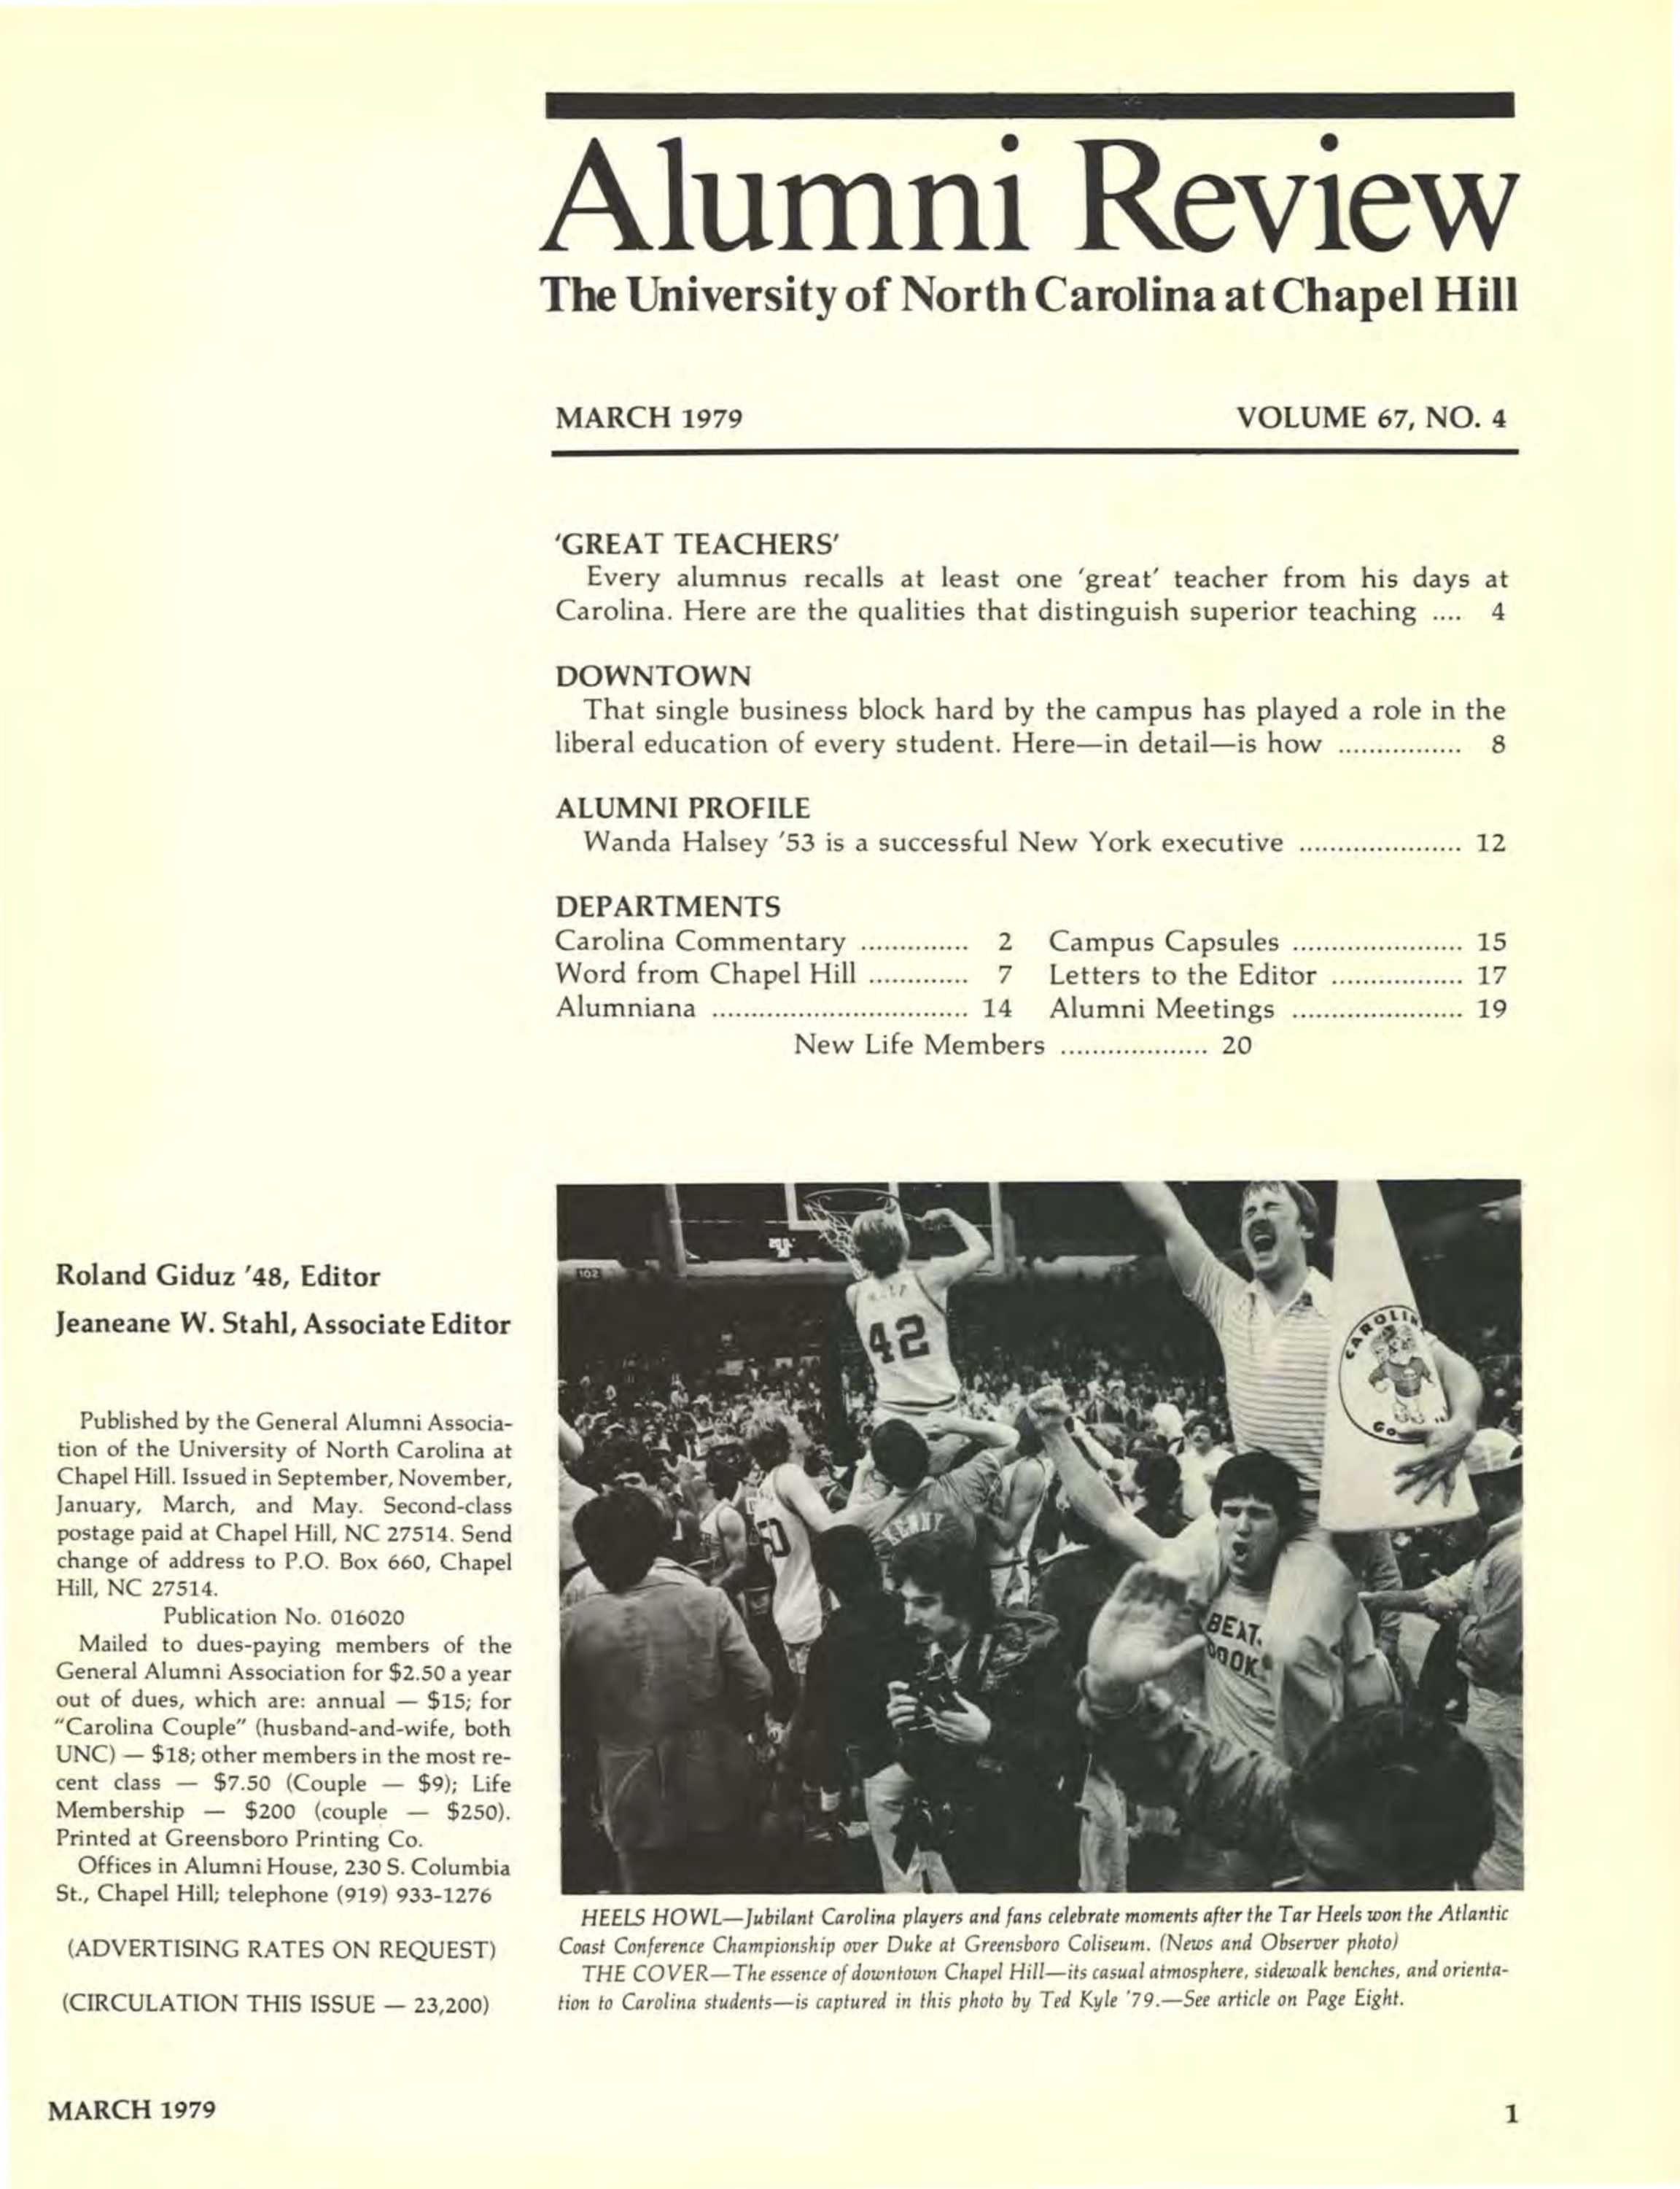 Carolina Alumni Review - March 1979 - page 1